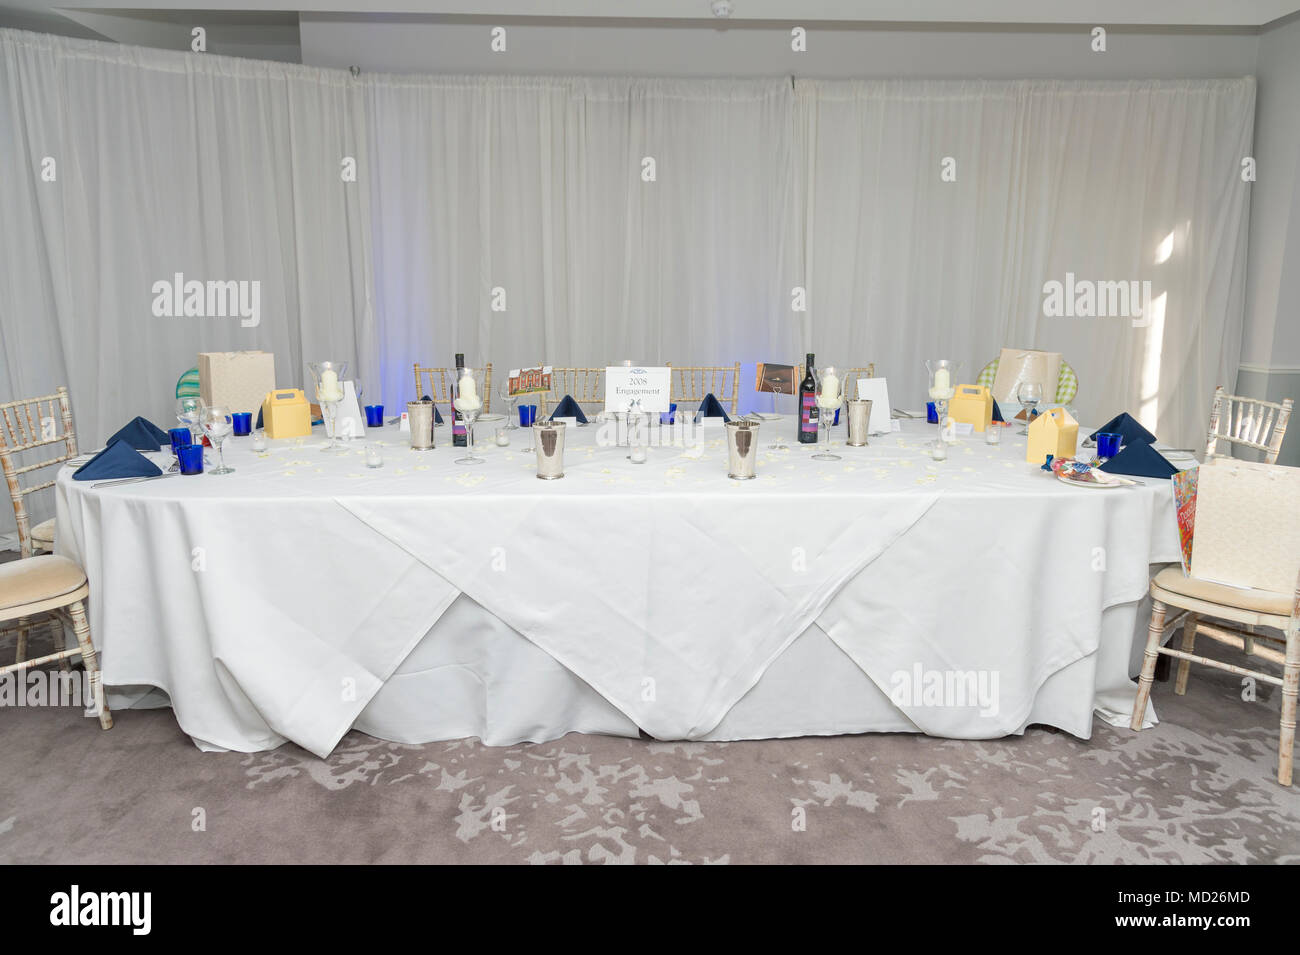 Wedding reception room tables and layout Stock Photo: 180143389 - Alamy